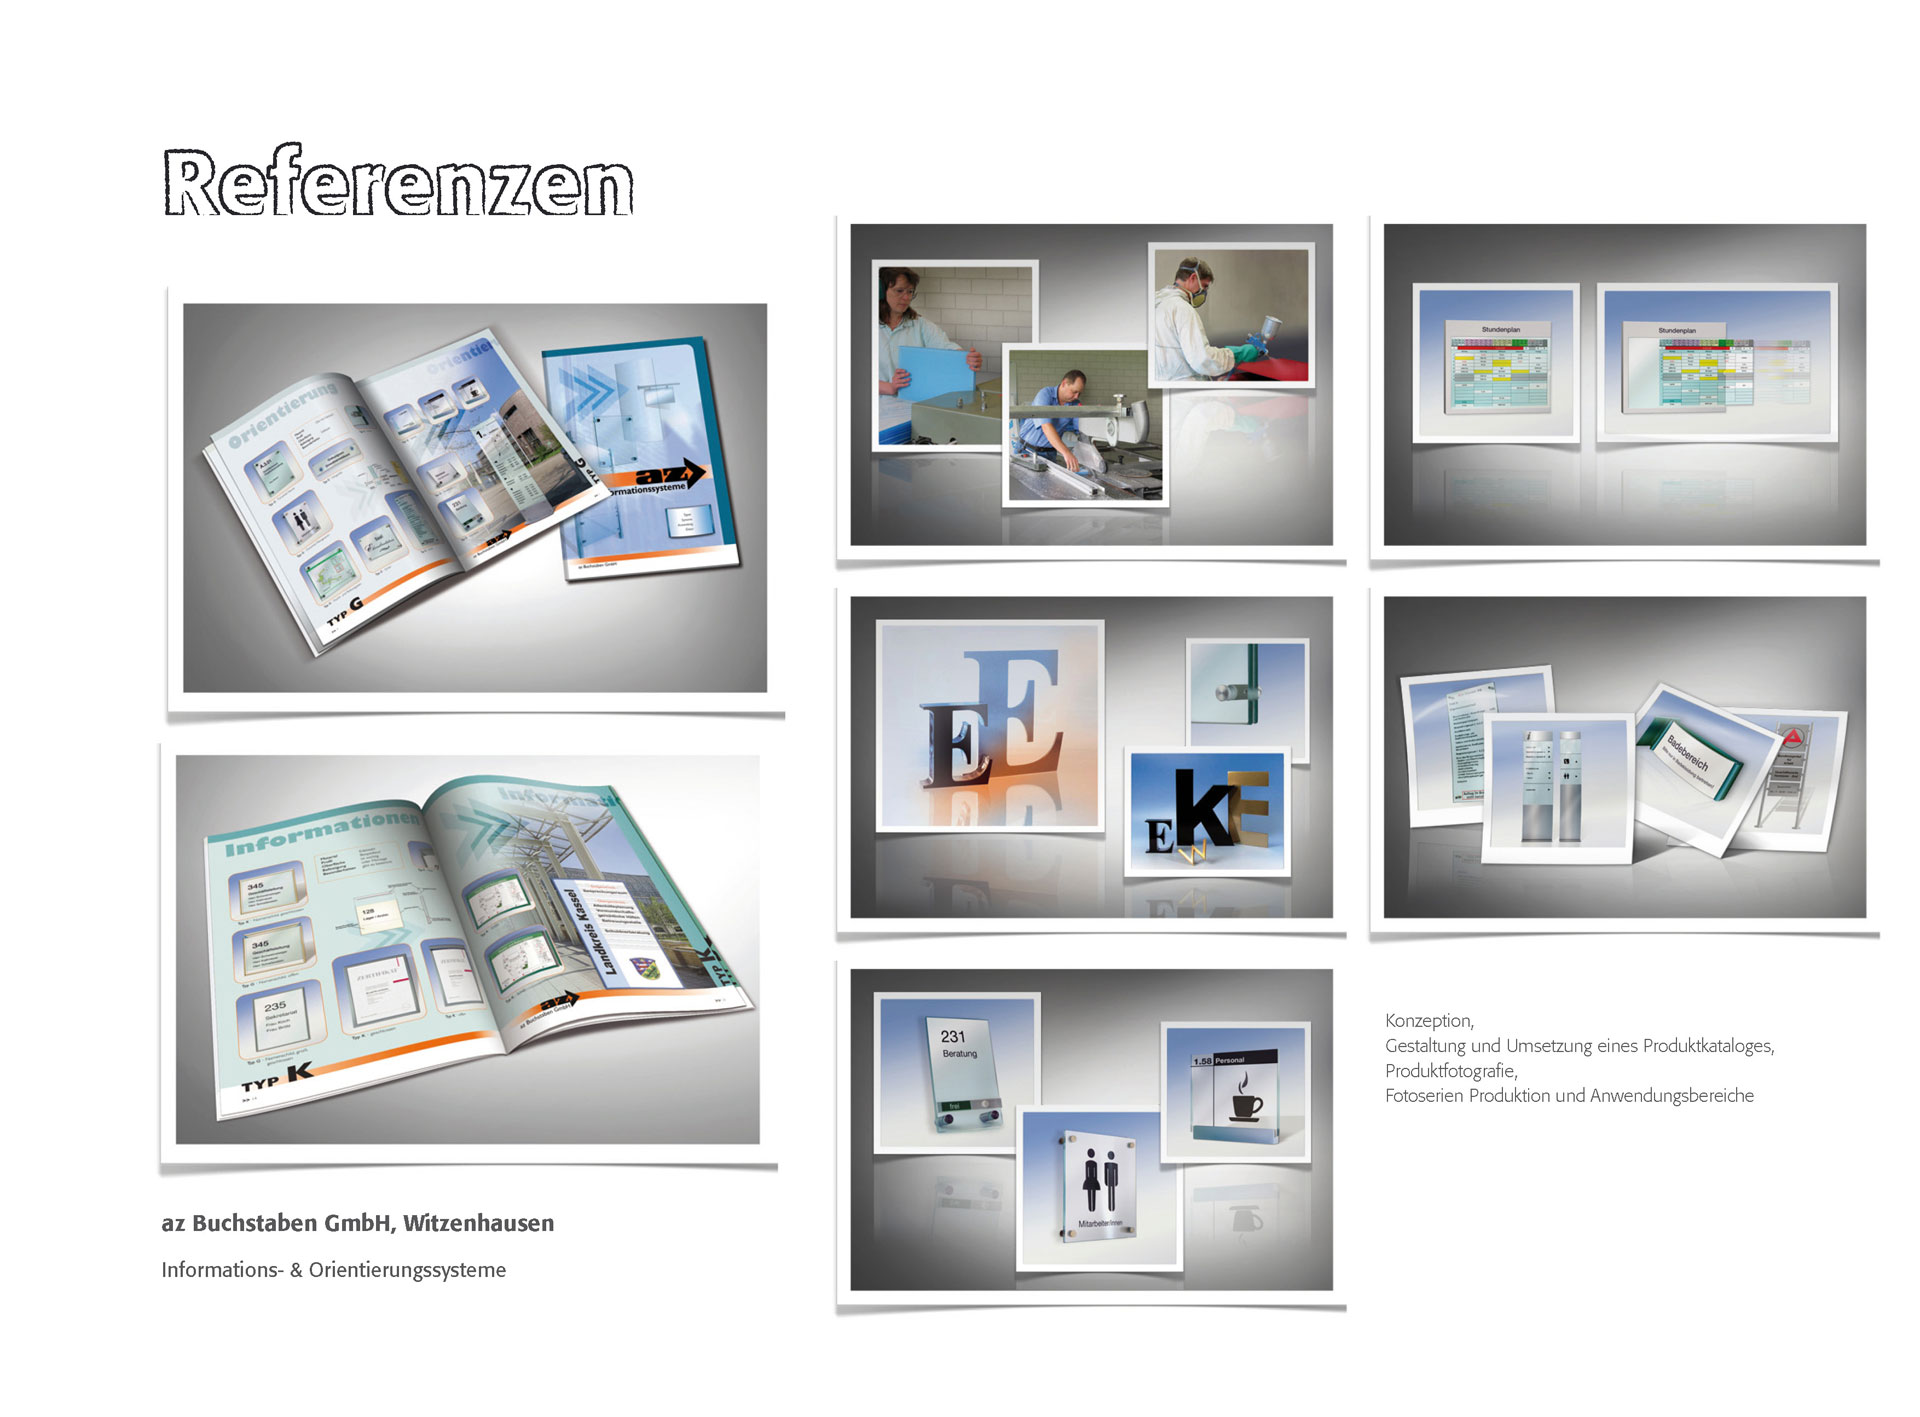 Konzeption, Katalog, Illustration, Fotografie